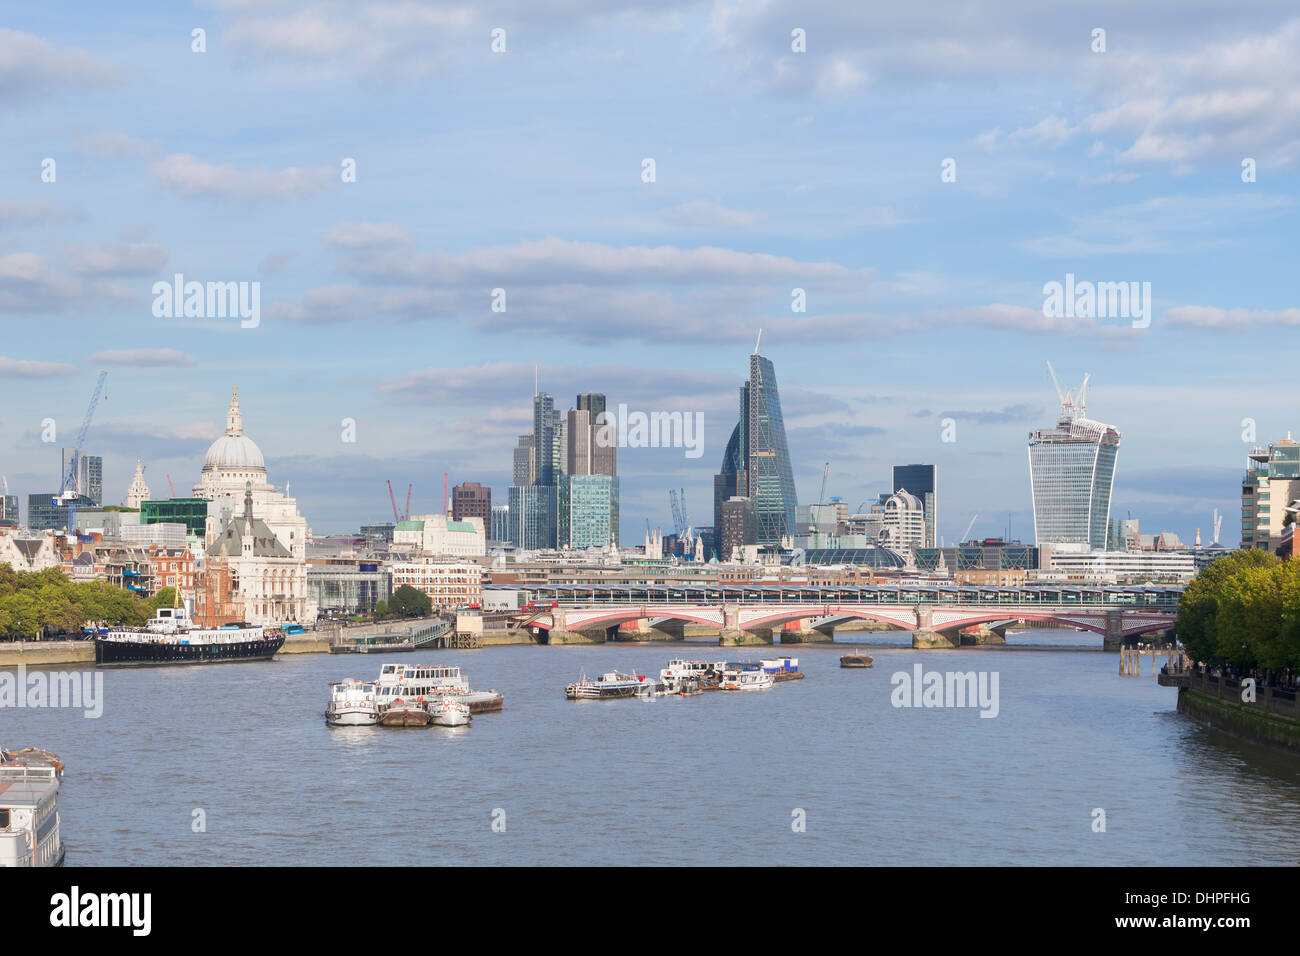 London skyline and river Thames, London, England Stock Photo